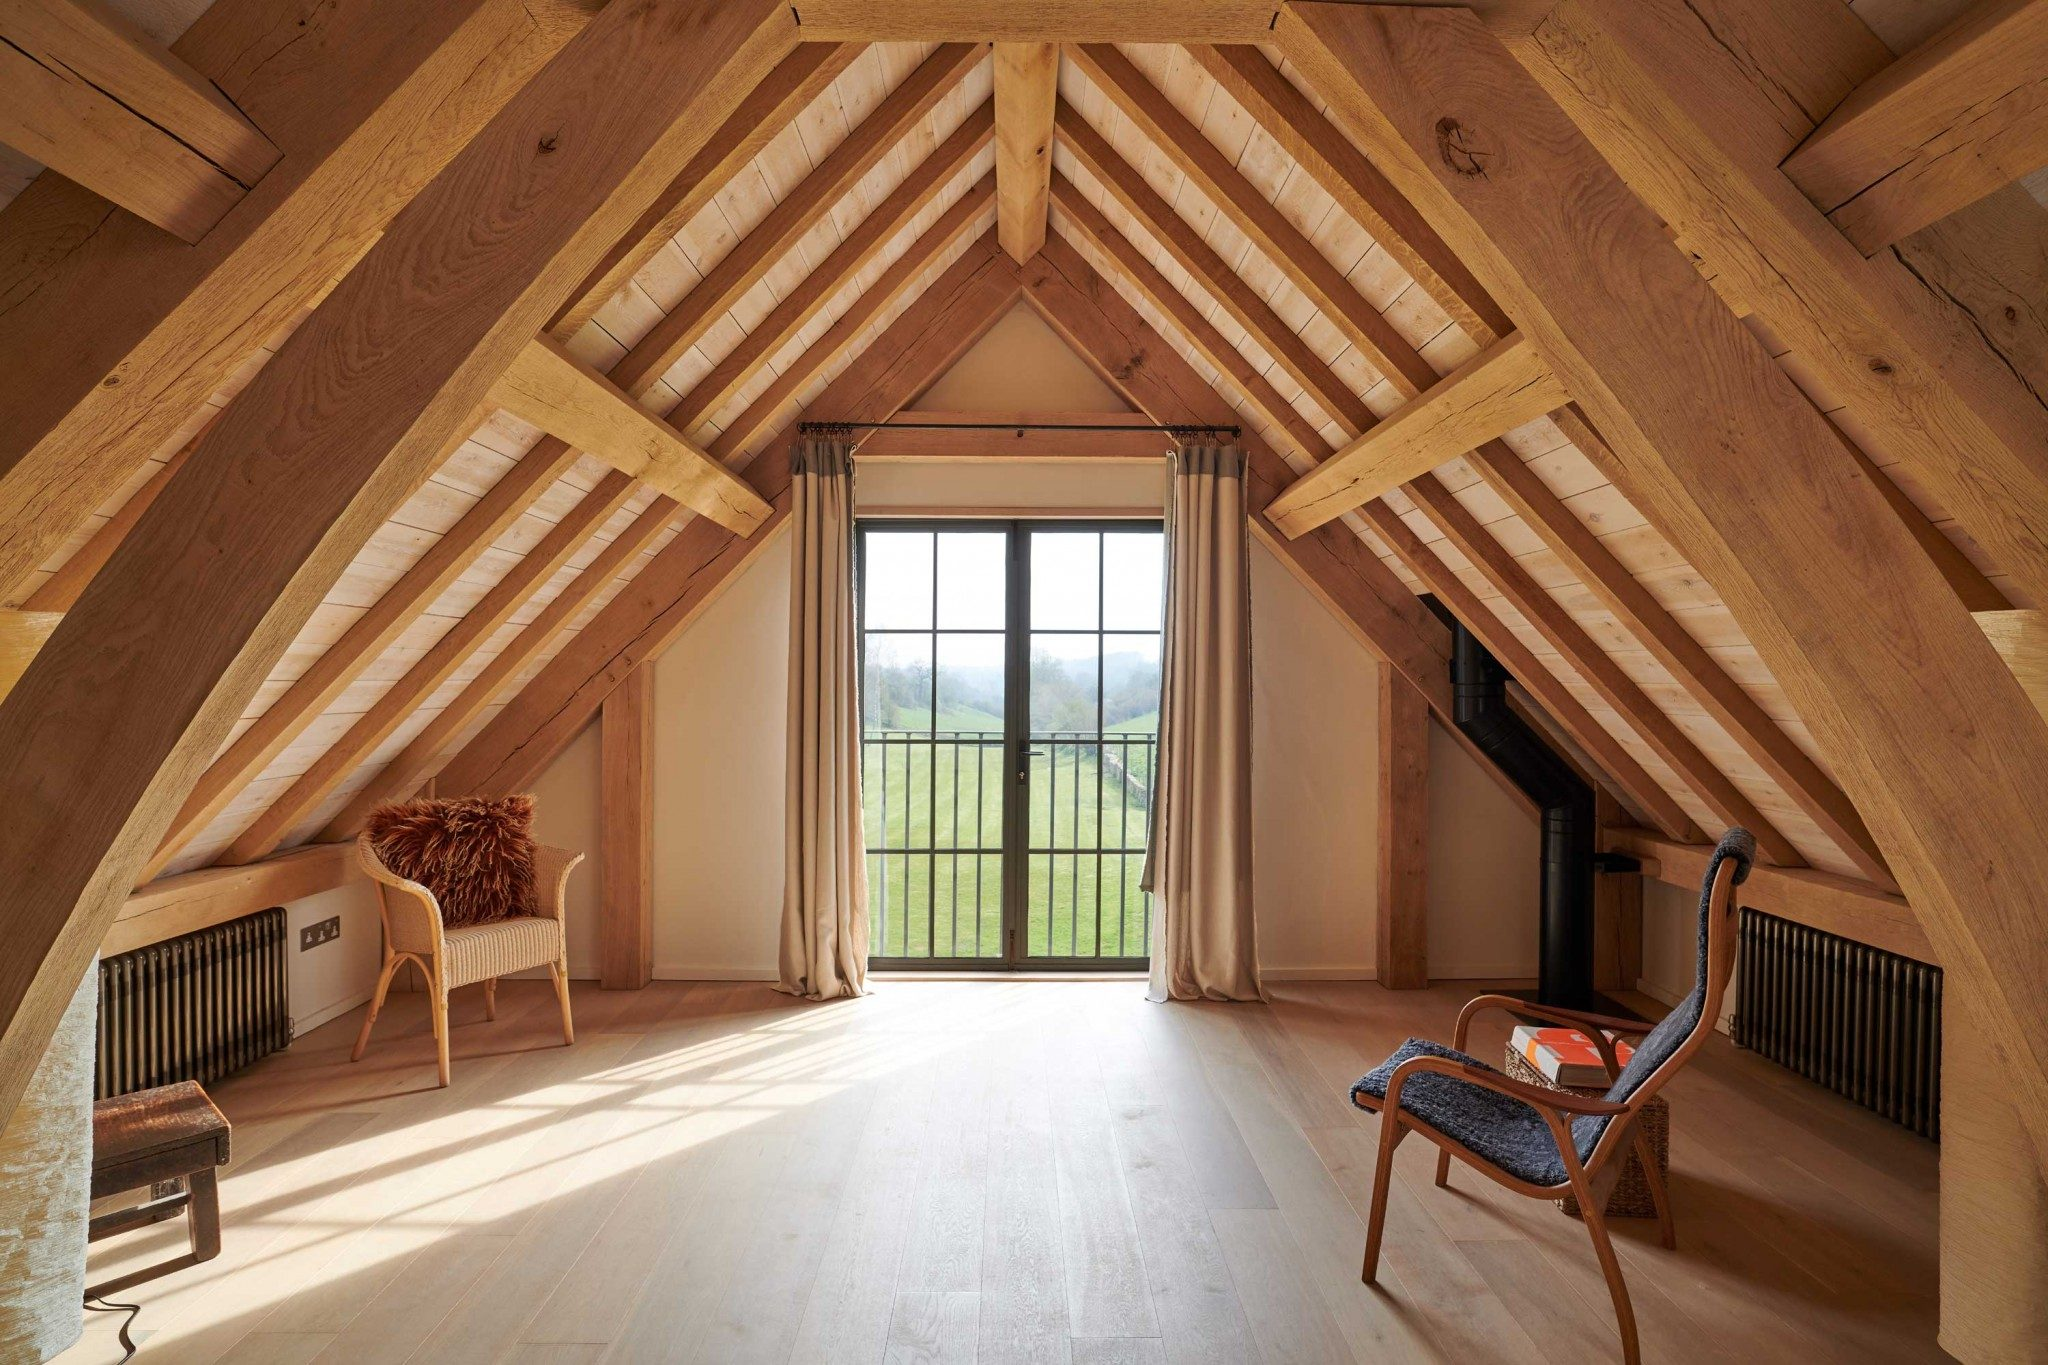 mackenzie wheeler are listed building residential architects based in shoreditch london specializing in oak frame houses